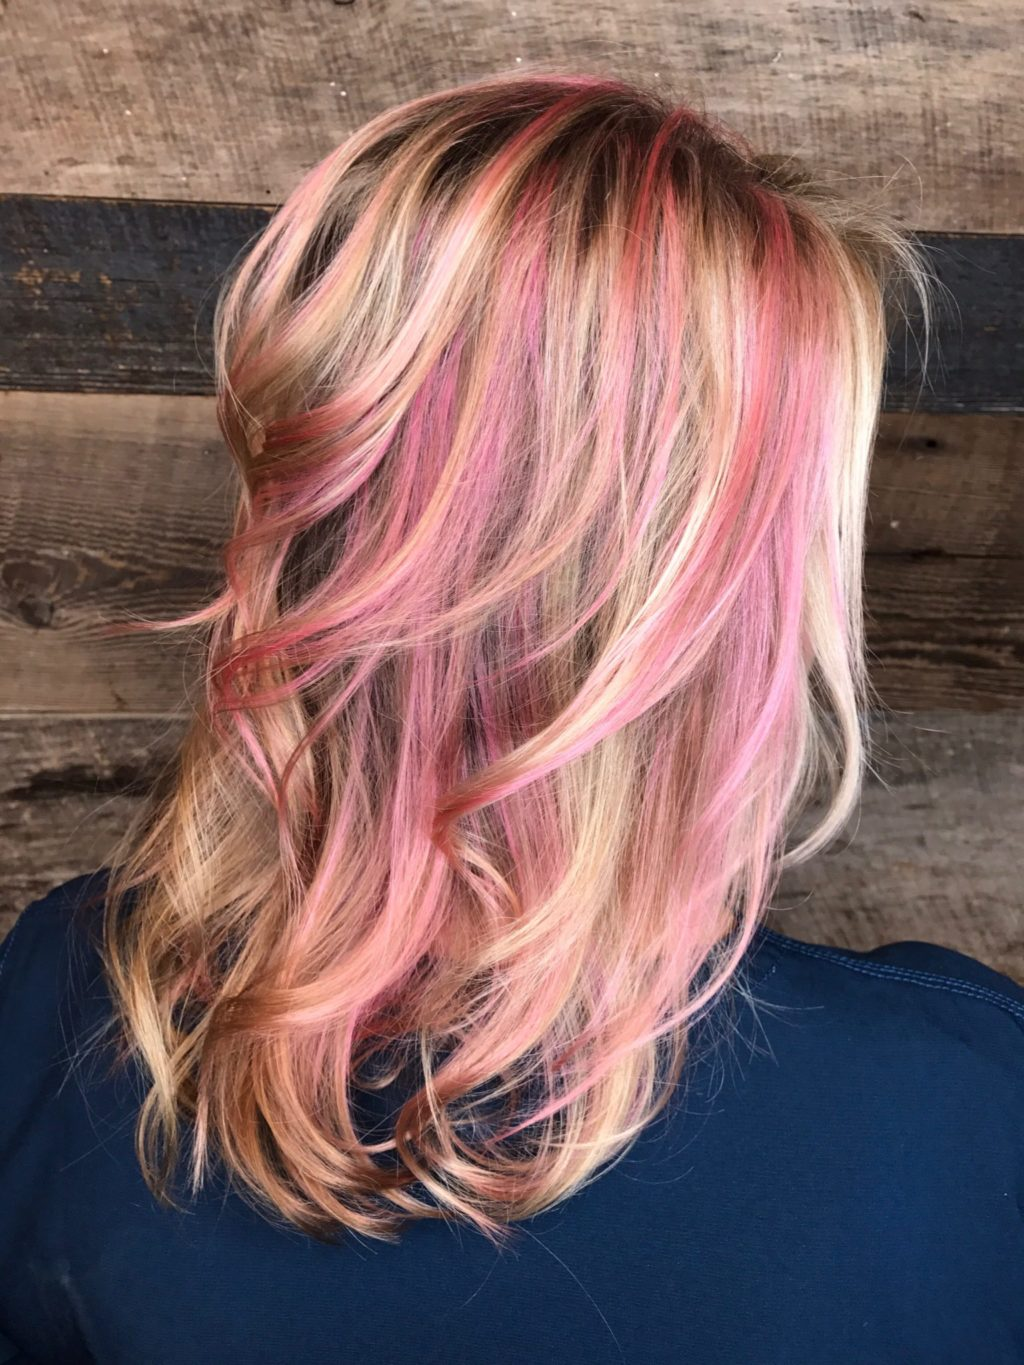 Volume For Fine Hair Soft Pink Highlights Shag Layers Beachy Waves